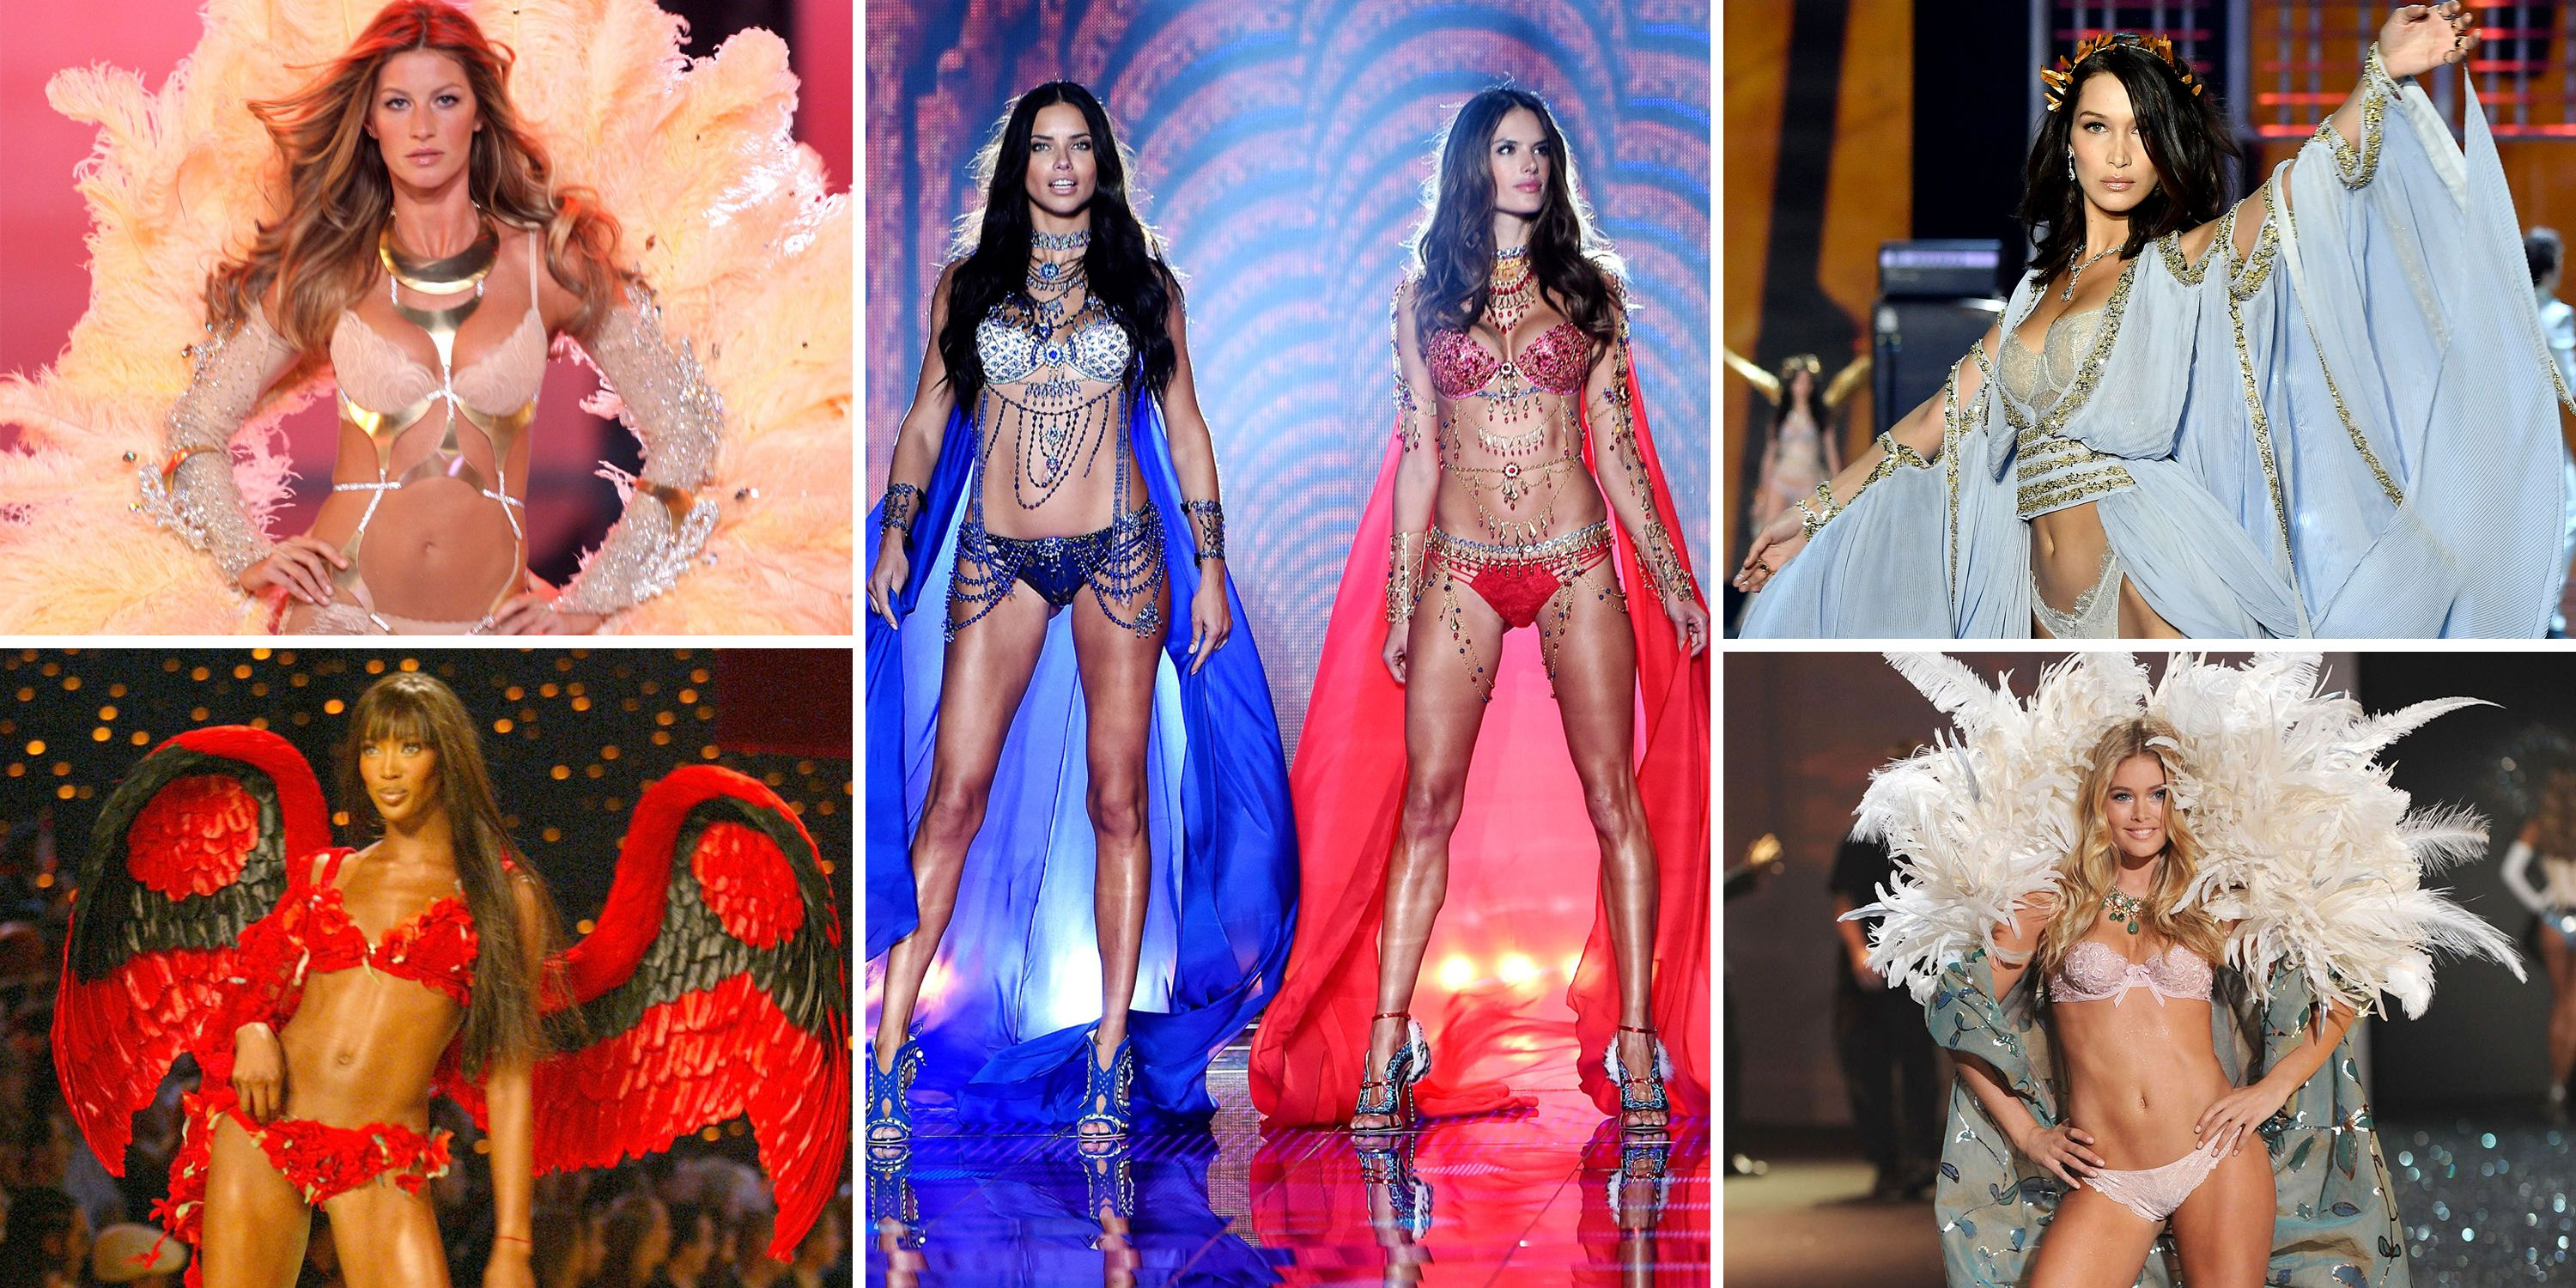 4d91efaa4903 Victoria's Secret Fashion Show History in Photos - Victoria's Secret ...